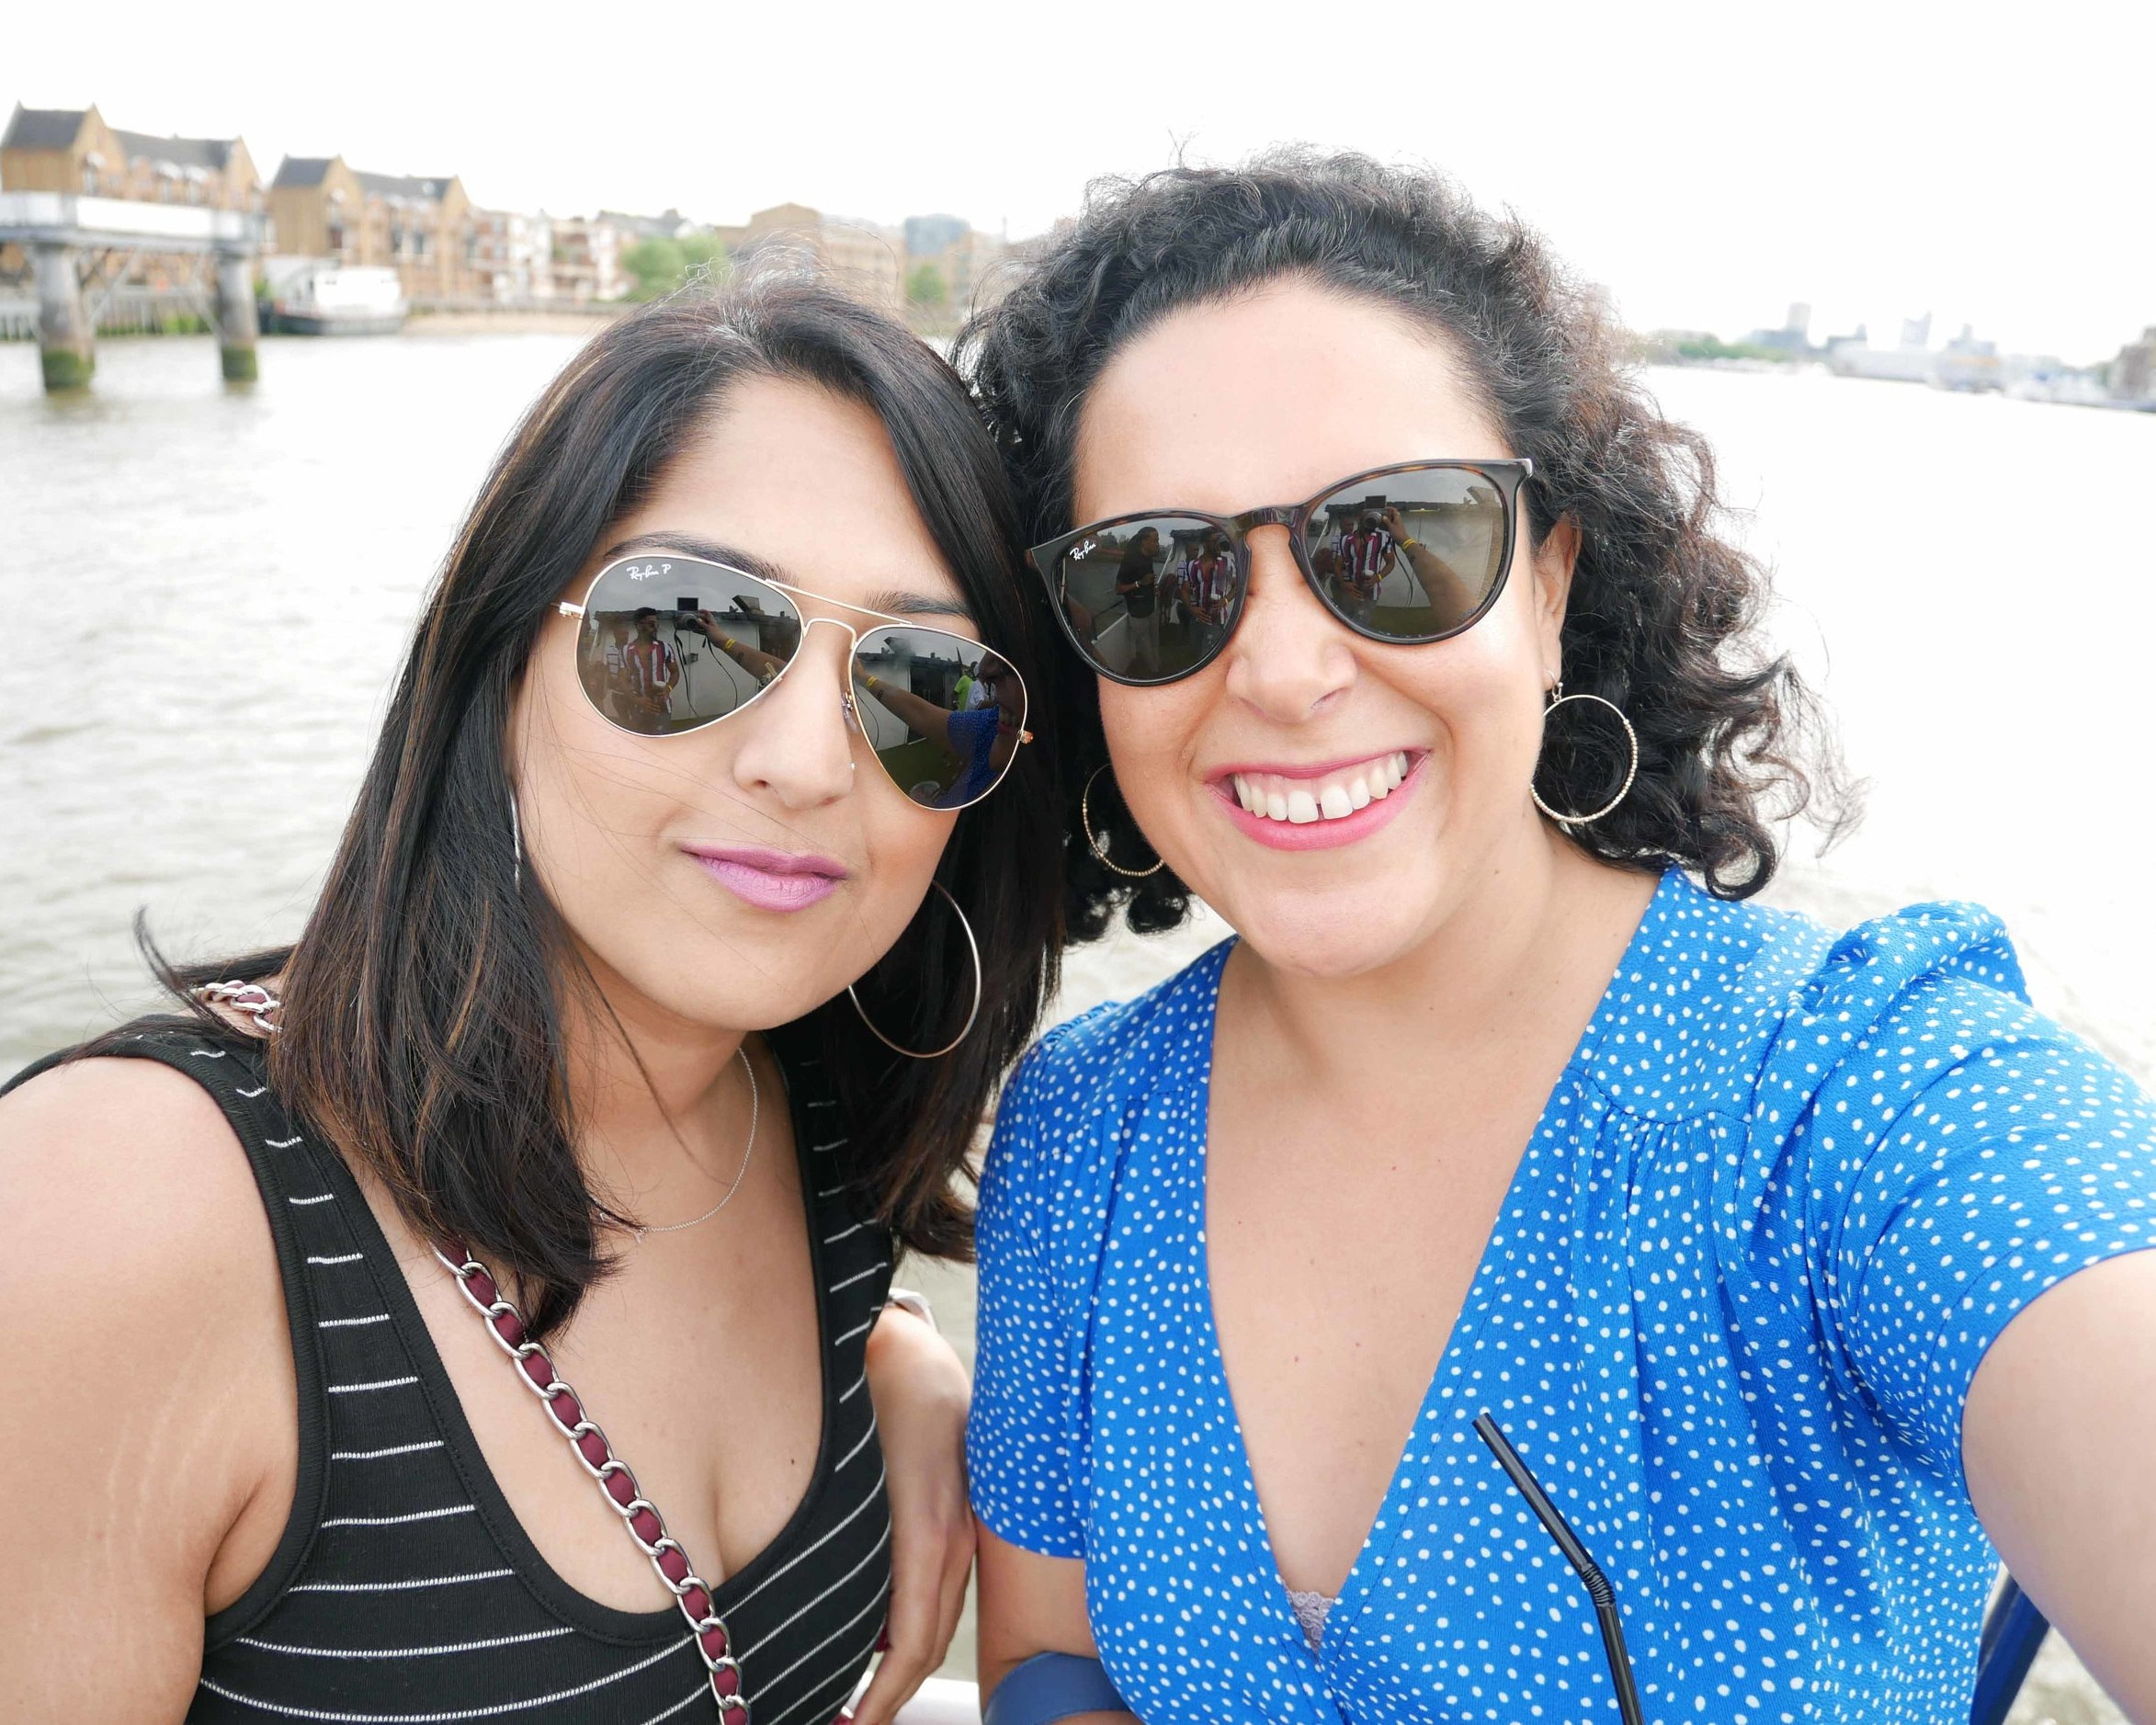 Partying, London boat party style , with my girl Natasha